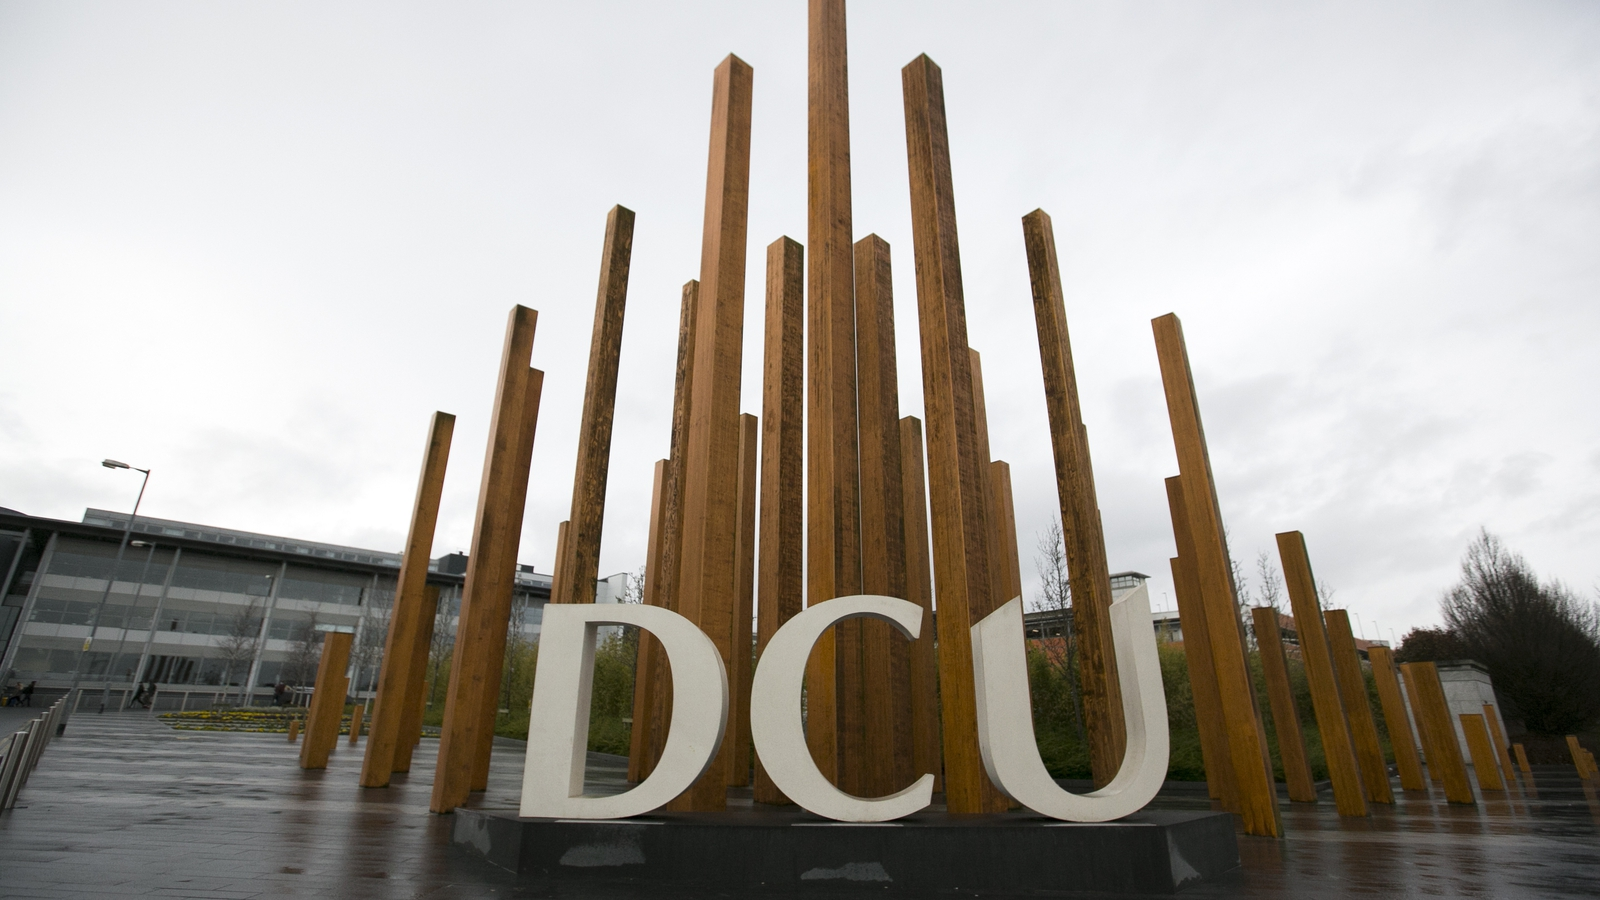 DCU 'astonished' over embassy complaints about course